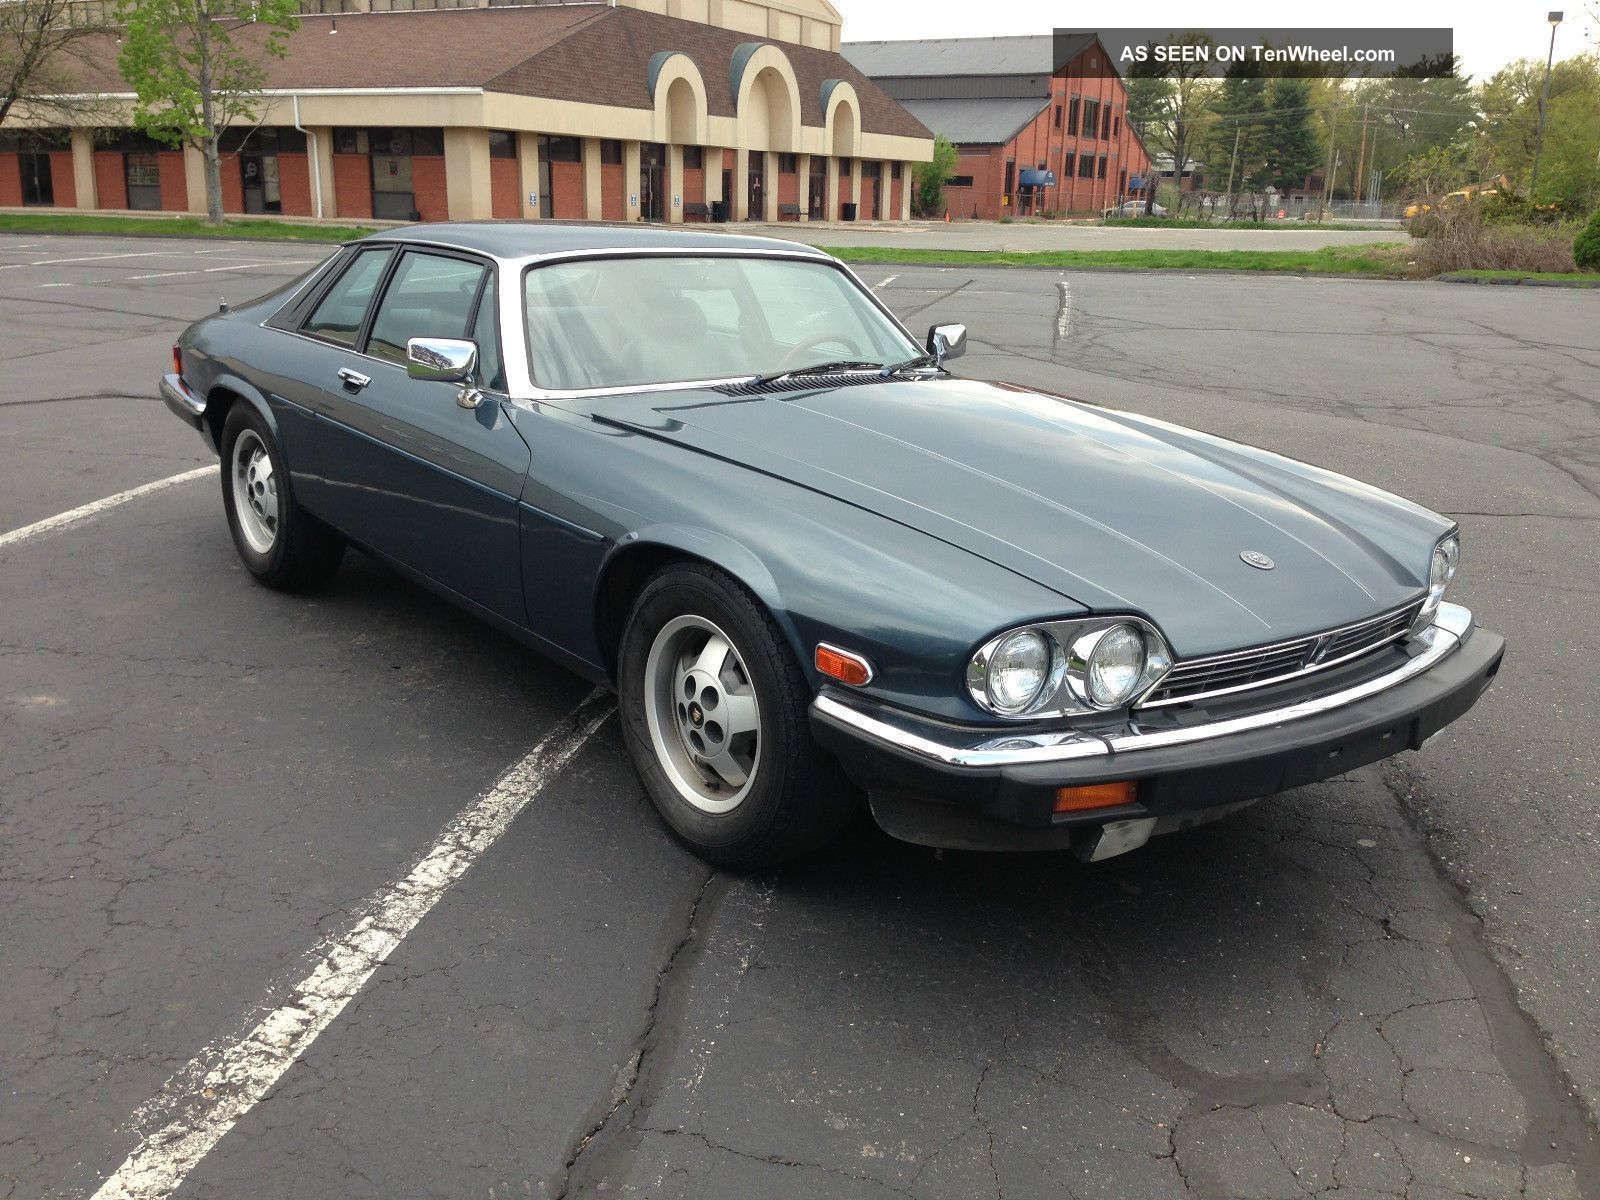 1985 jaguar xjs coupe daily driver or easy restoration. Black Bedroom Furniture Sets. Home Design Ideas